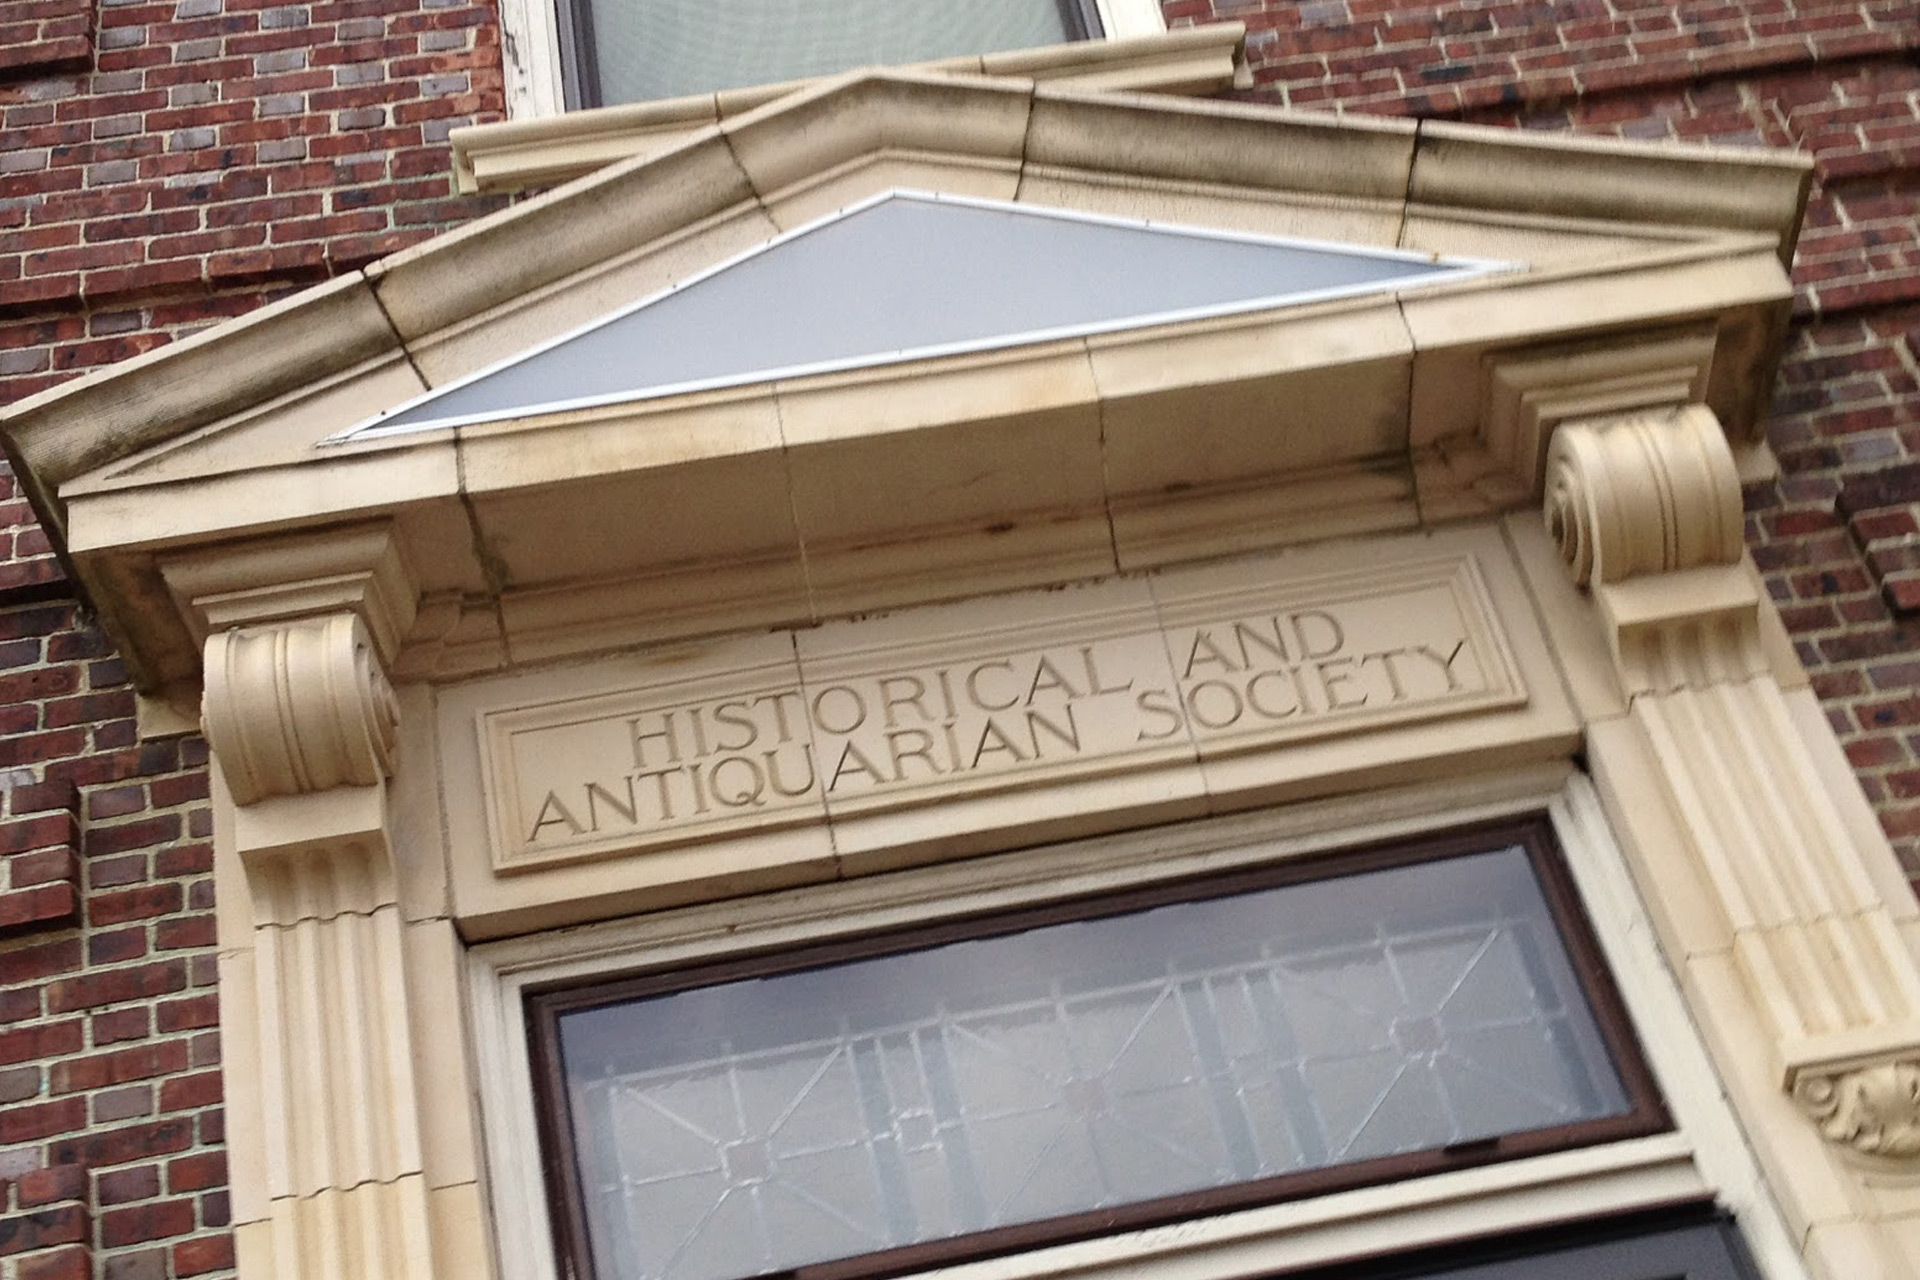 Archway of the Vineland Historical and Antiquarian Society.